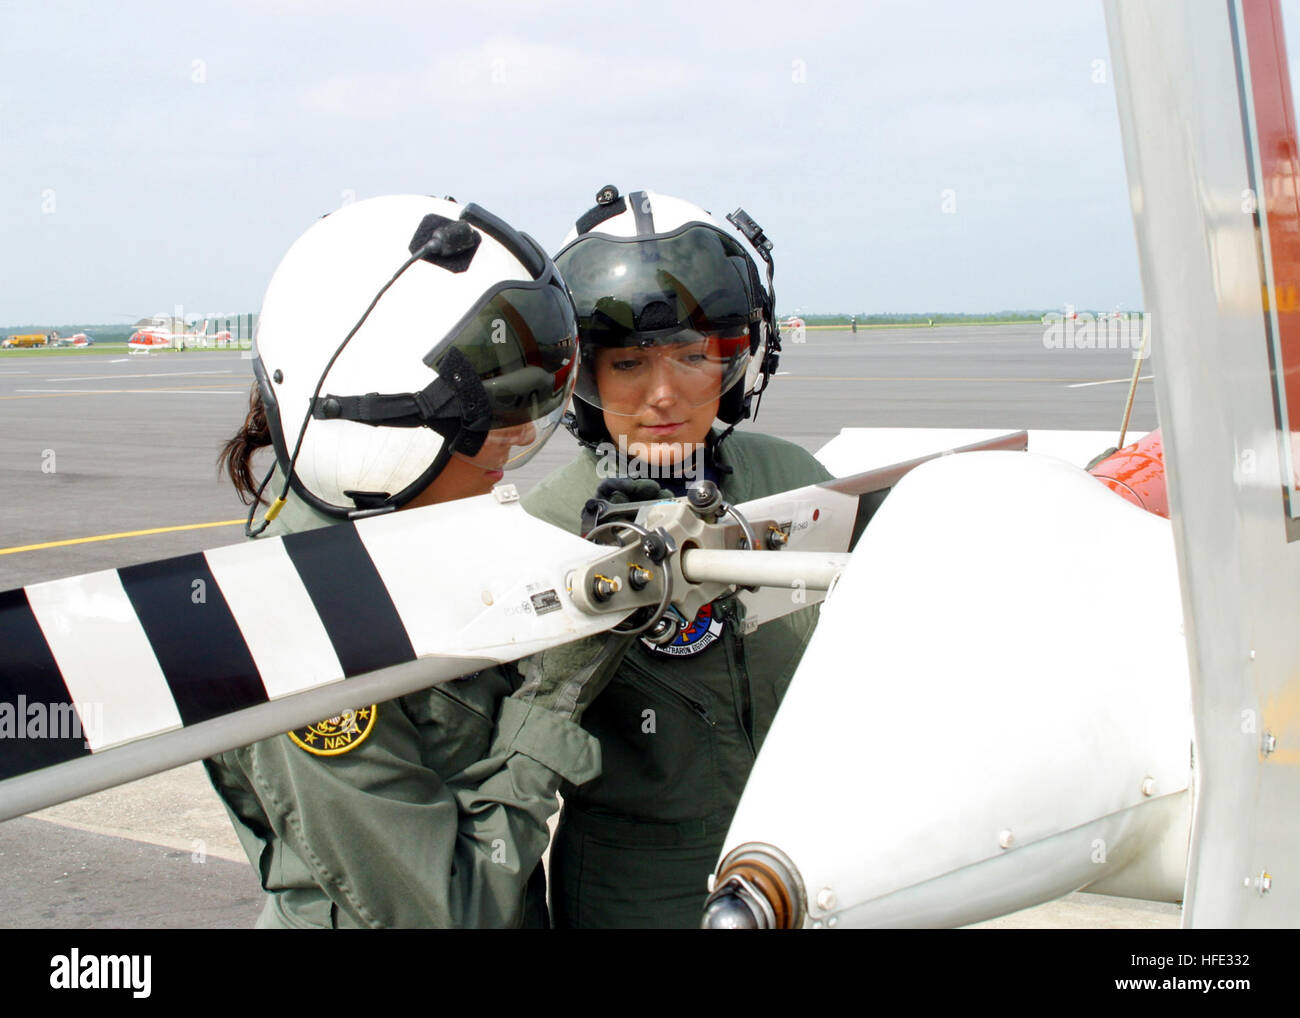 040811-N-0000T-001 Naval Air Station Whiting Field, Fla. (Aug. 11, 2004) Ð Identical twins Lt. j.g. Deborah - Stock Image